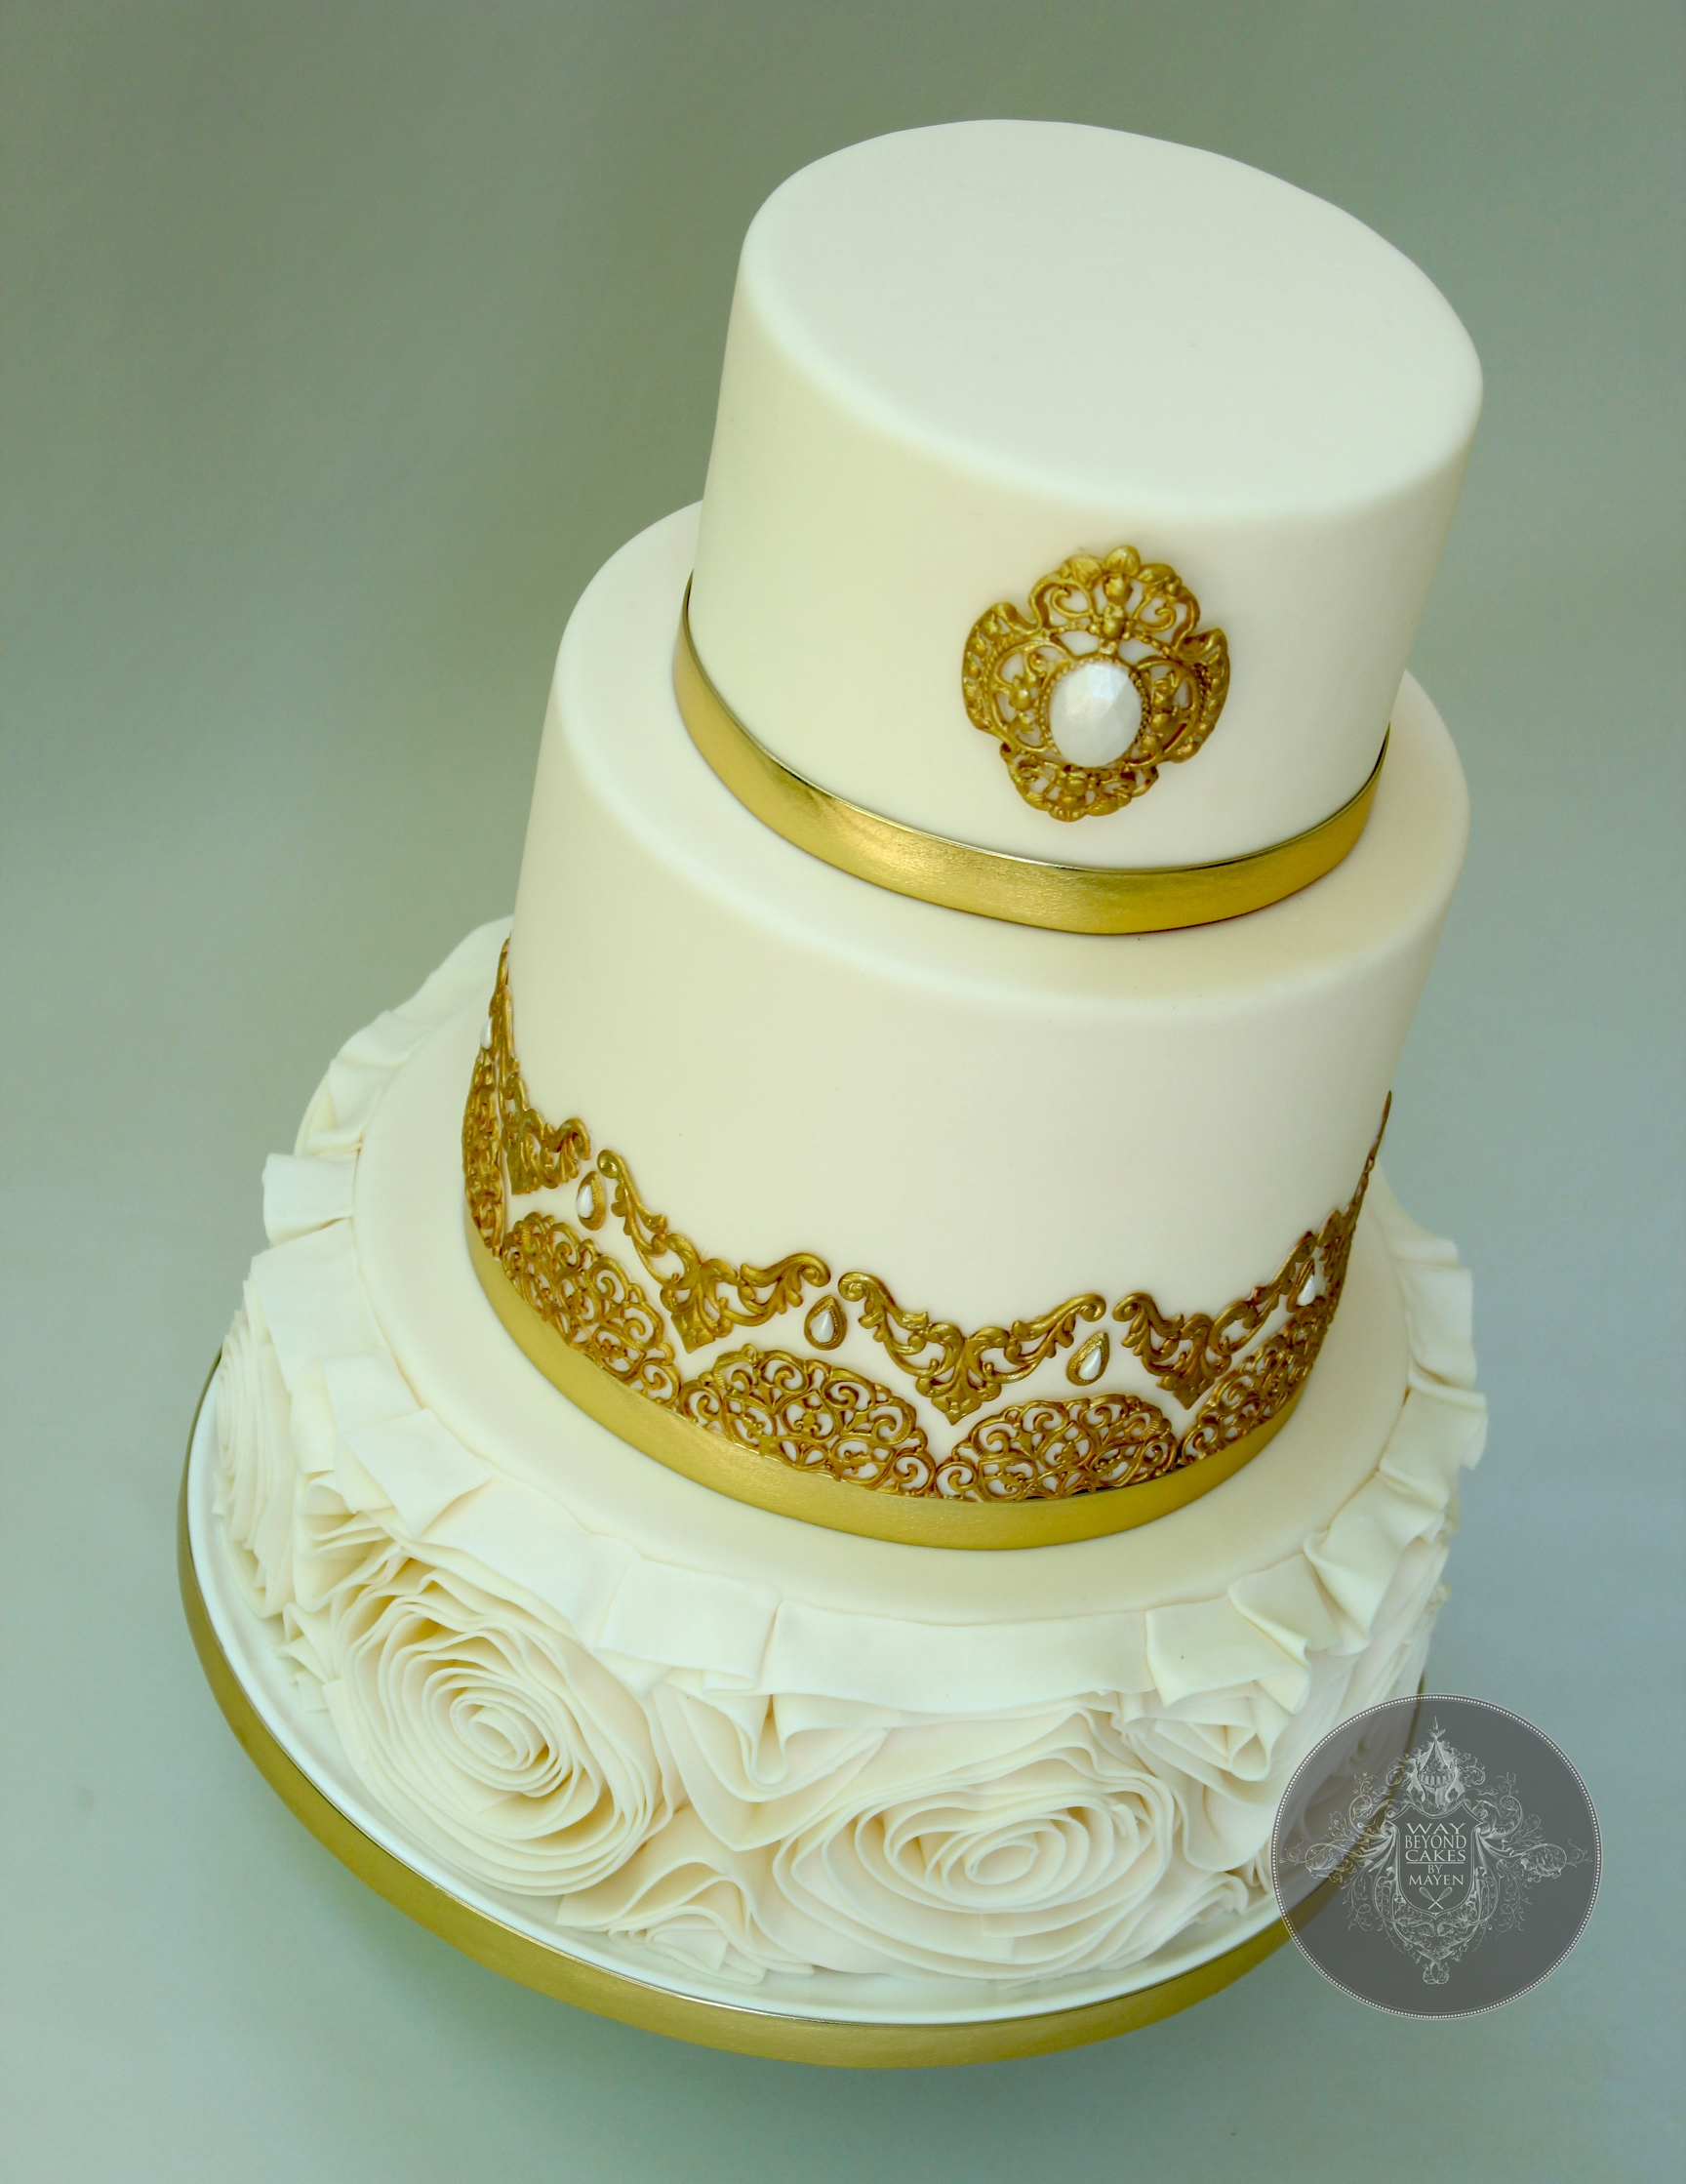 golden wedding cake recipe golden wedding cake with floral ruffles cakecentral 14764